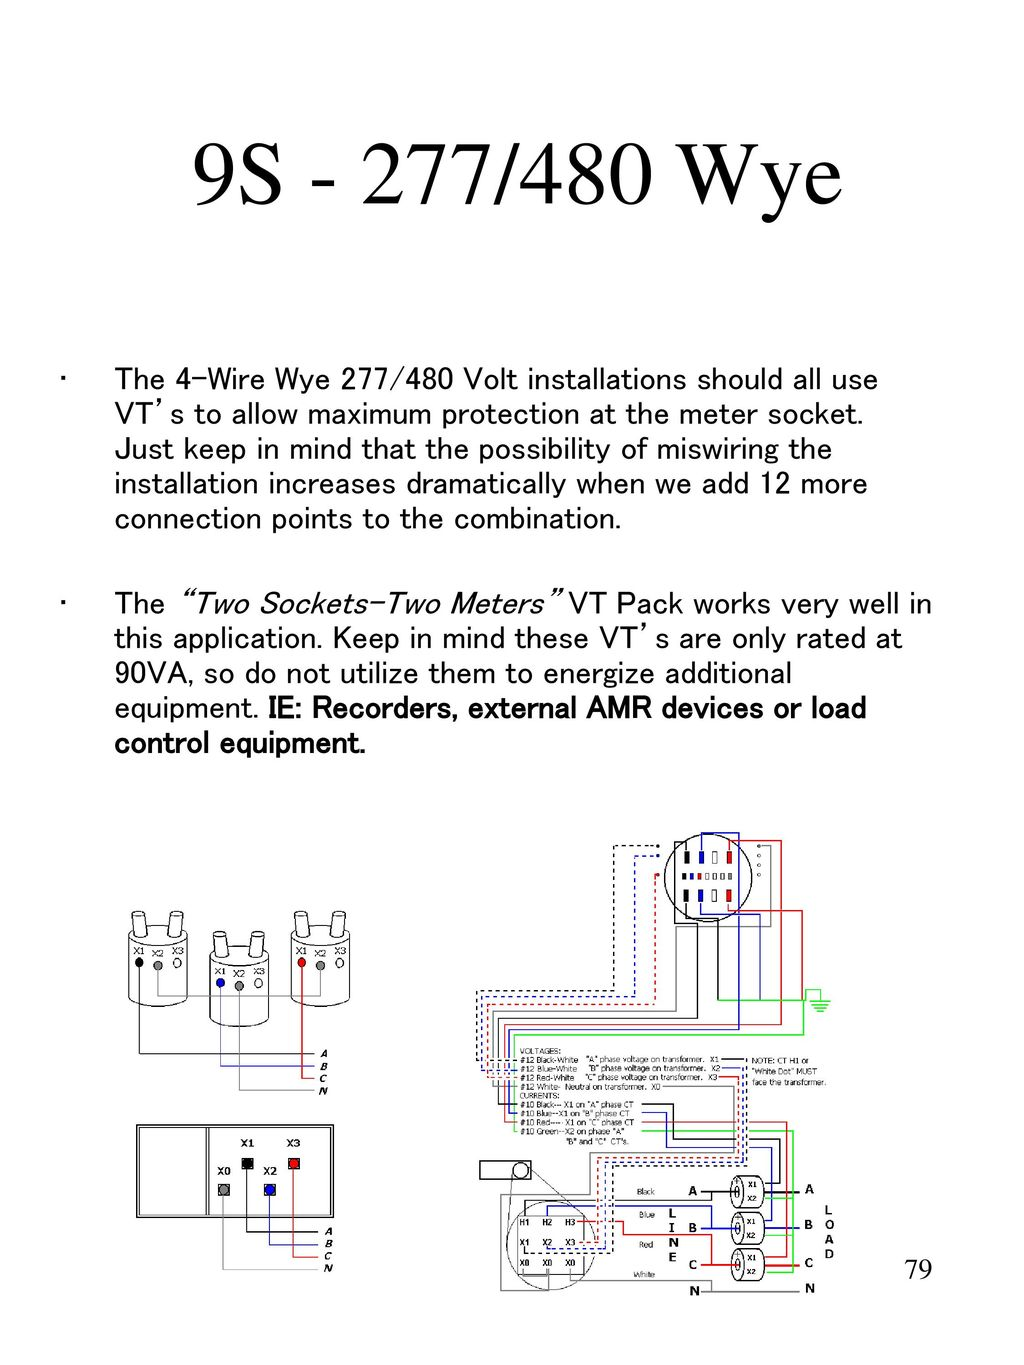 Metering In Todays World Ppt Download Three Way Switch Miswired 79 9s